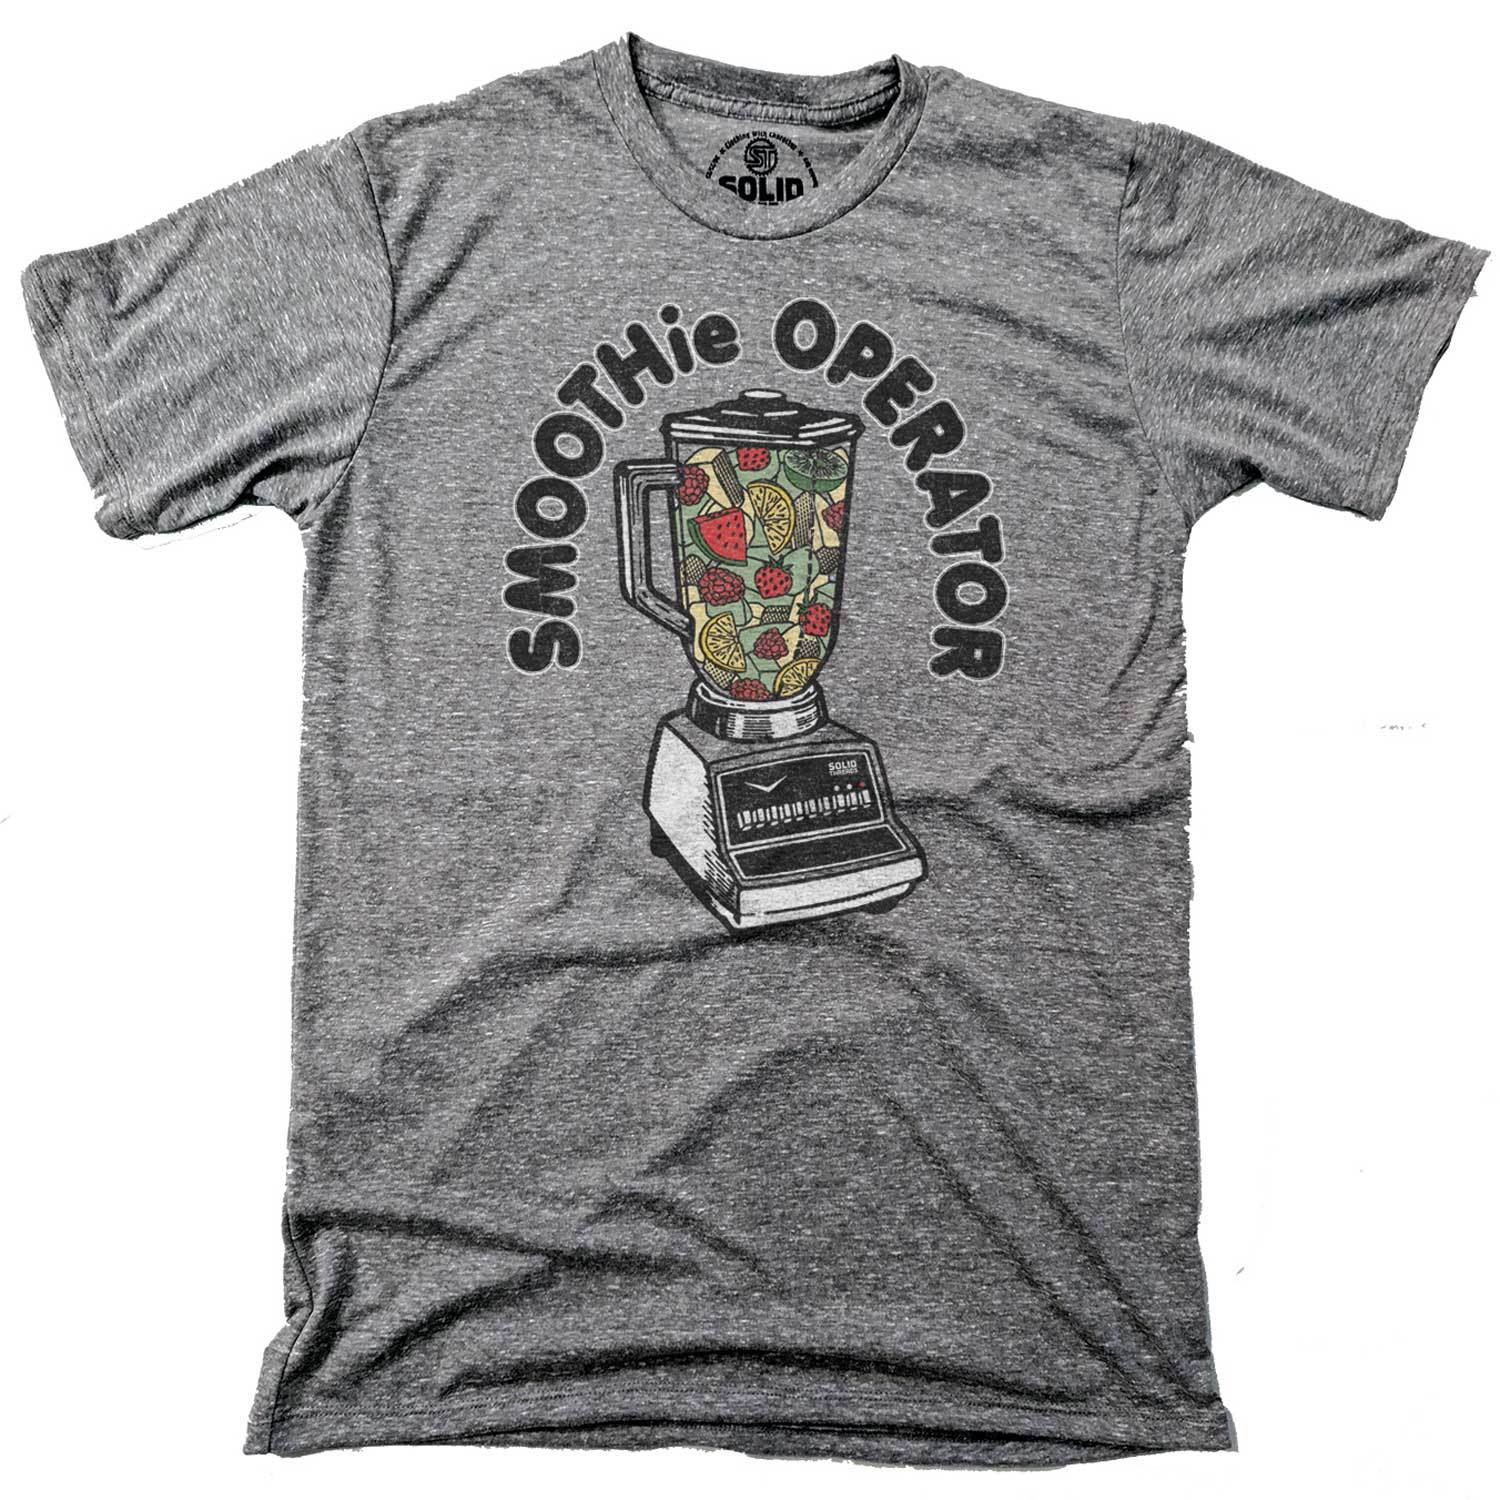 Men's Smoothie Operator Vintage Inspired T-Shirt | Funny Health Food Graphic Tee | Solid Threads